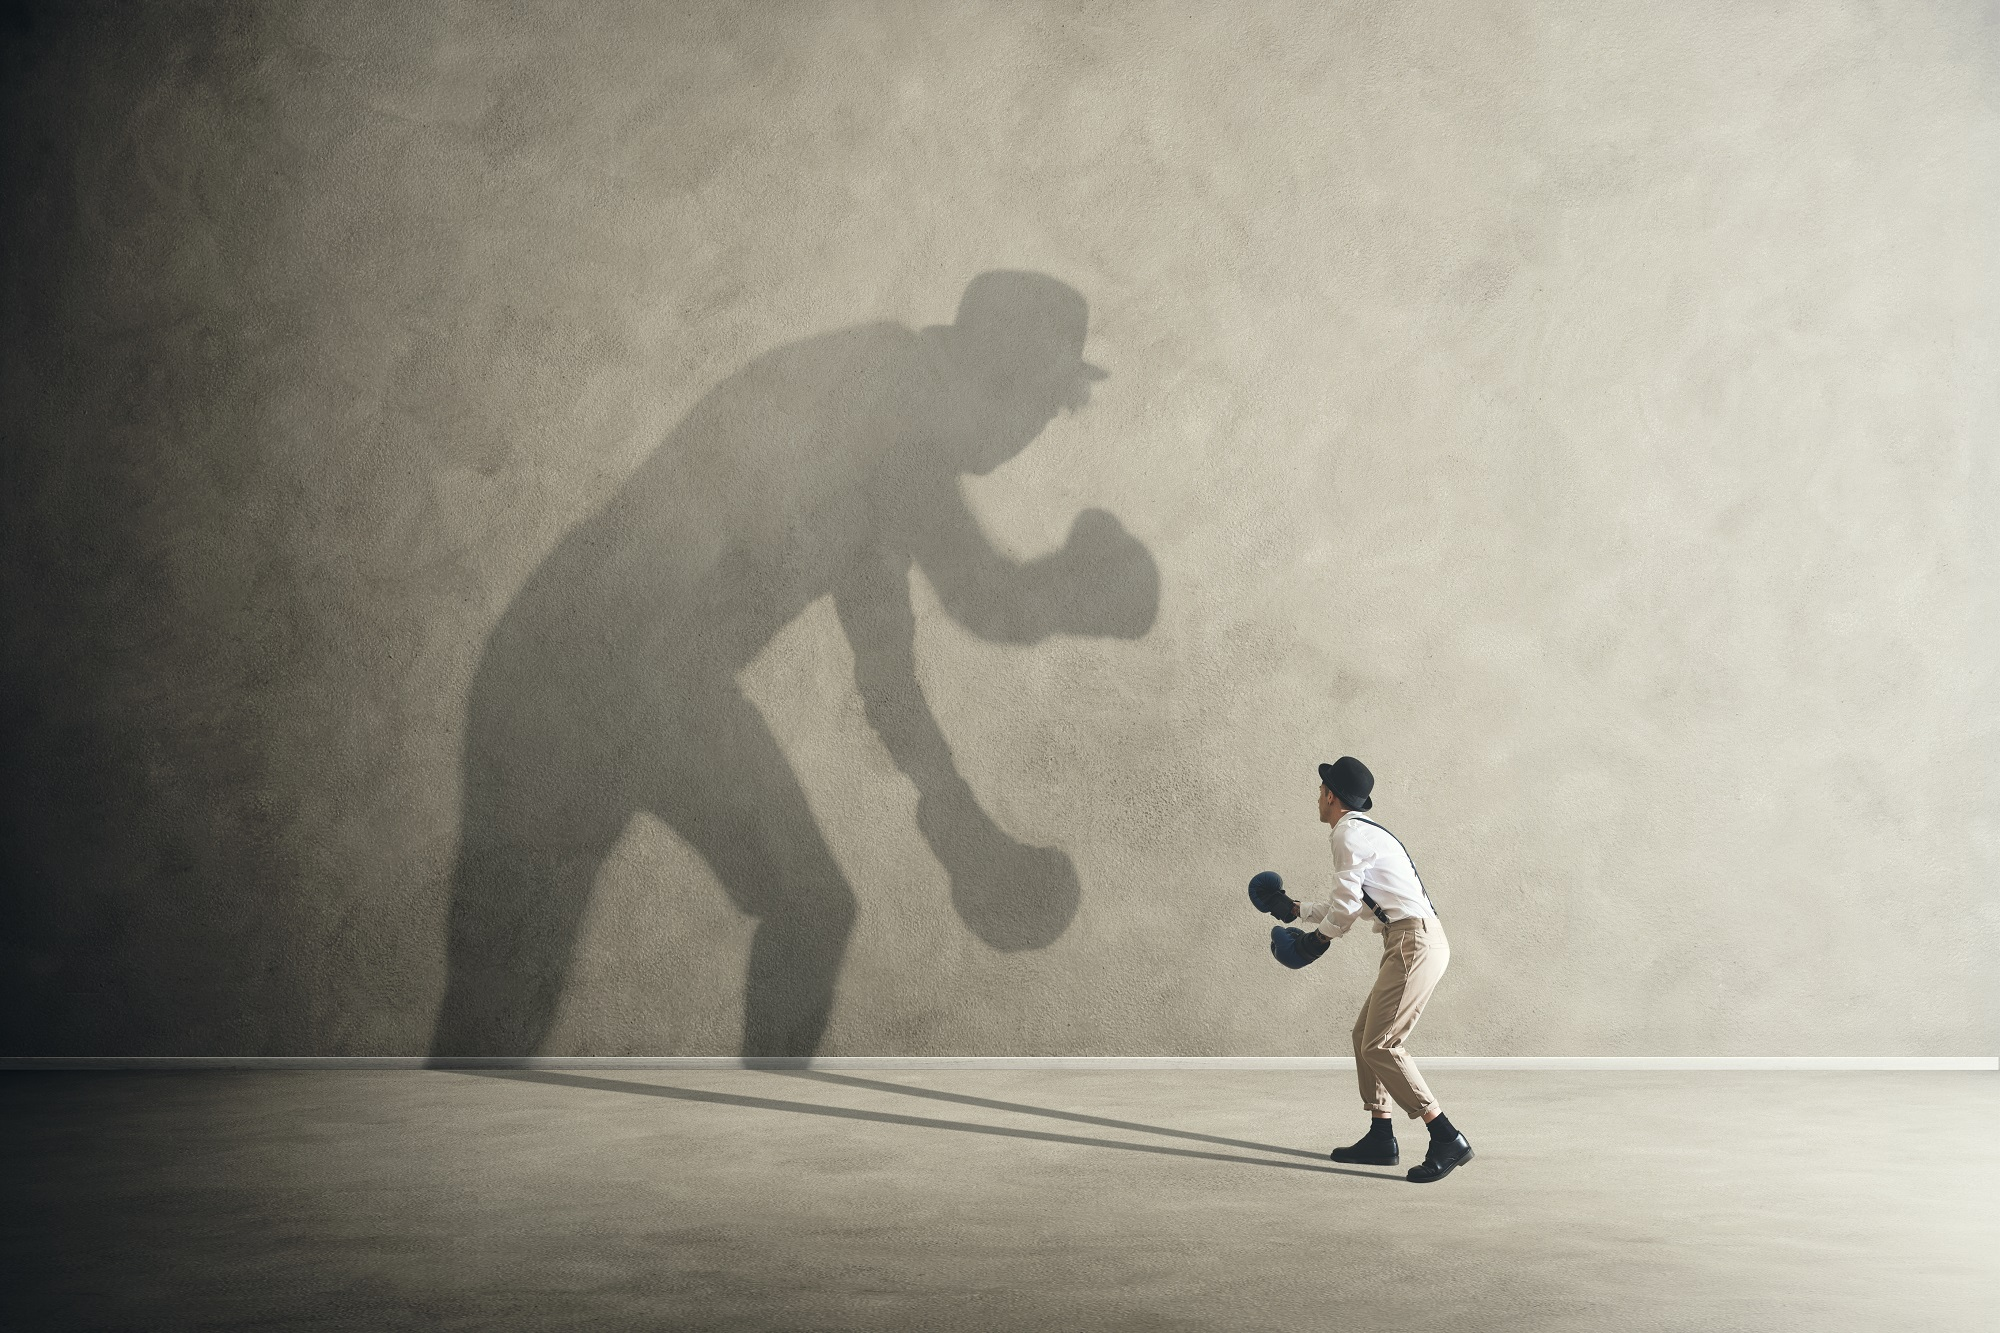 Man boxing with his shadow